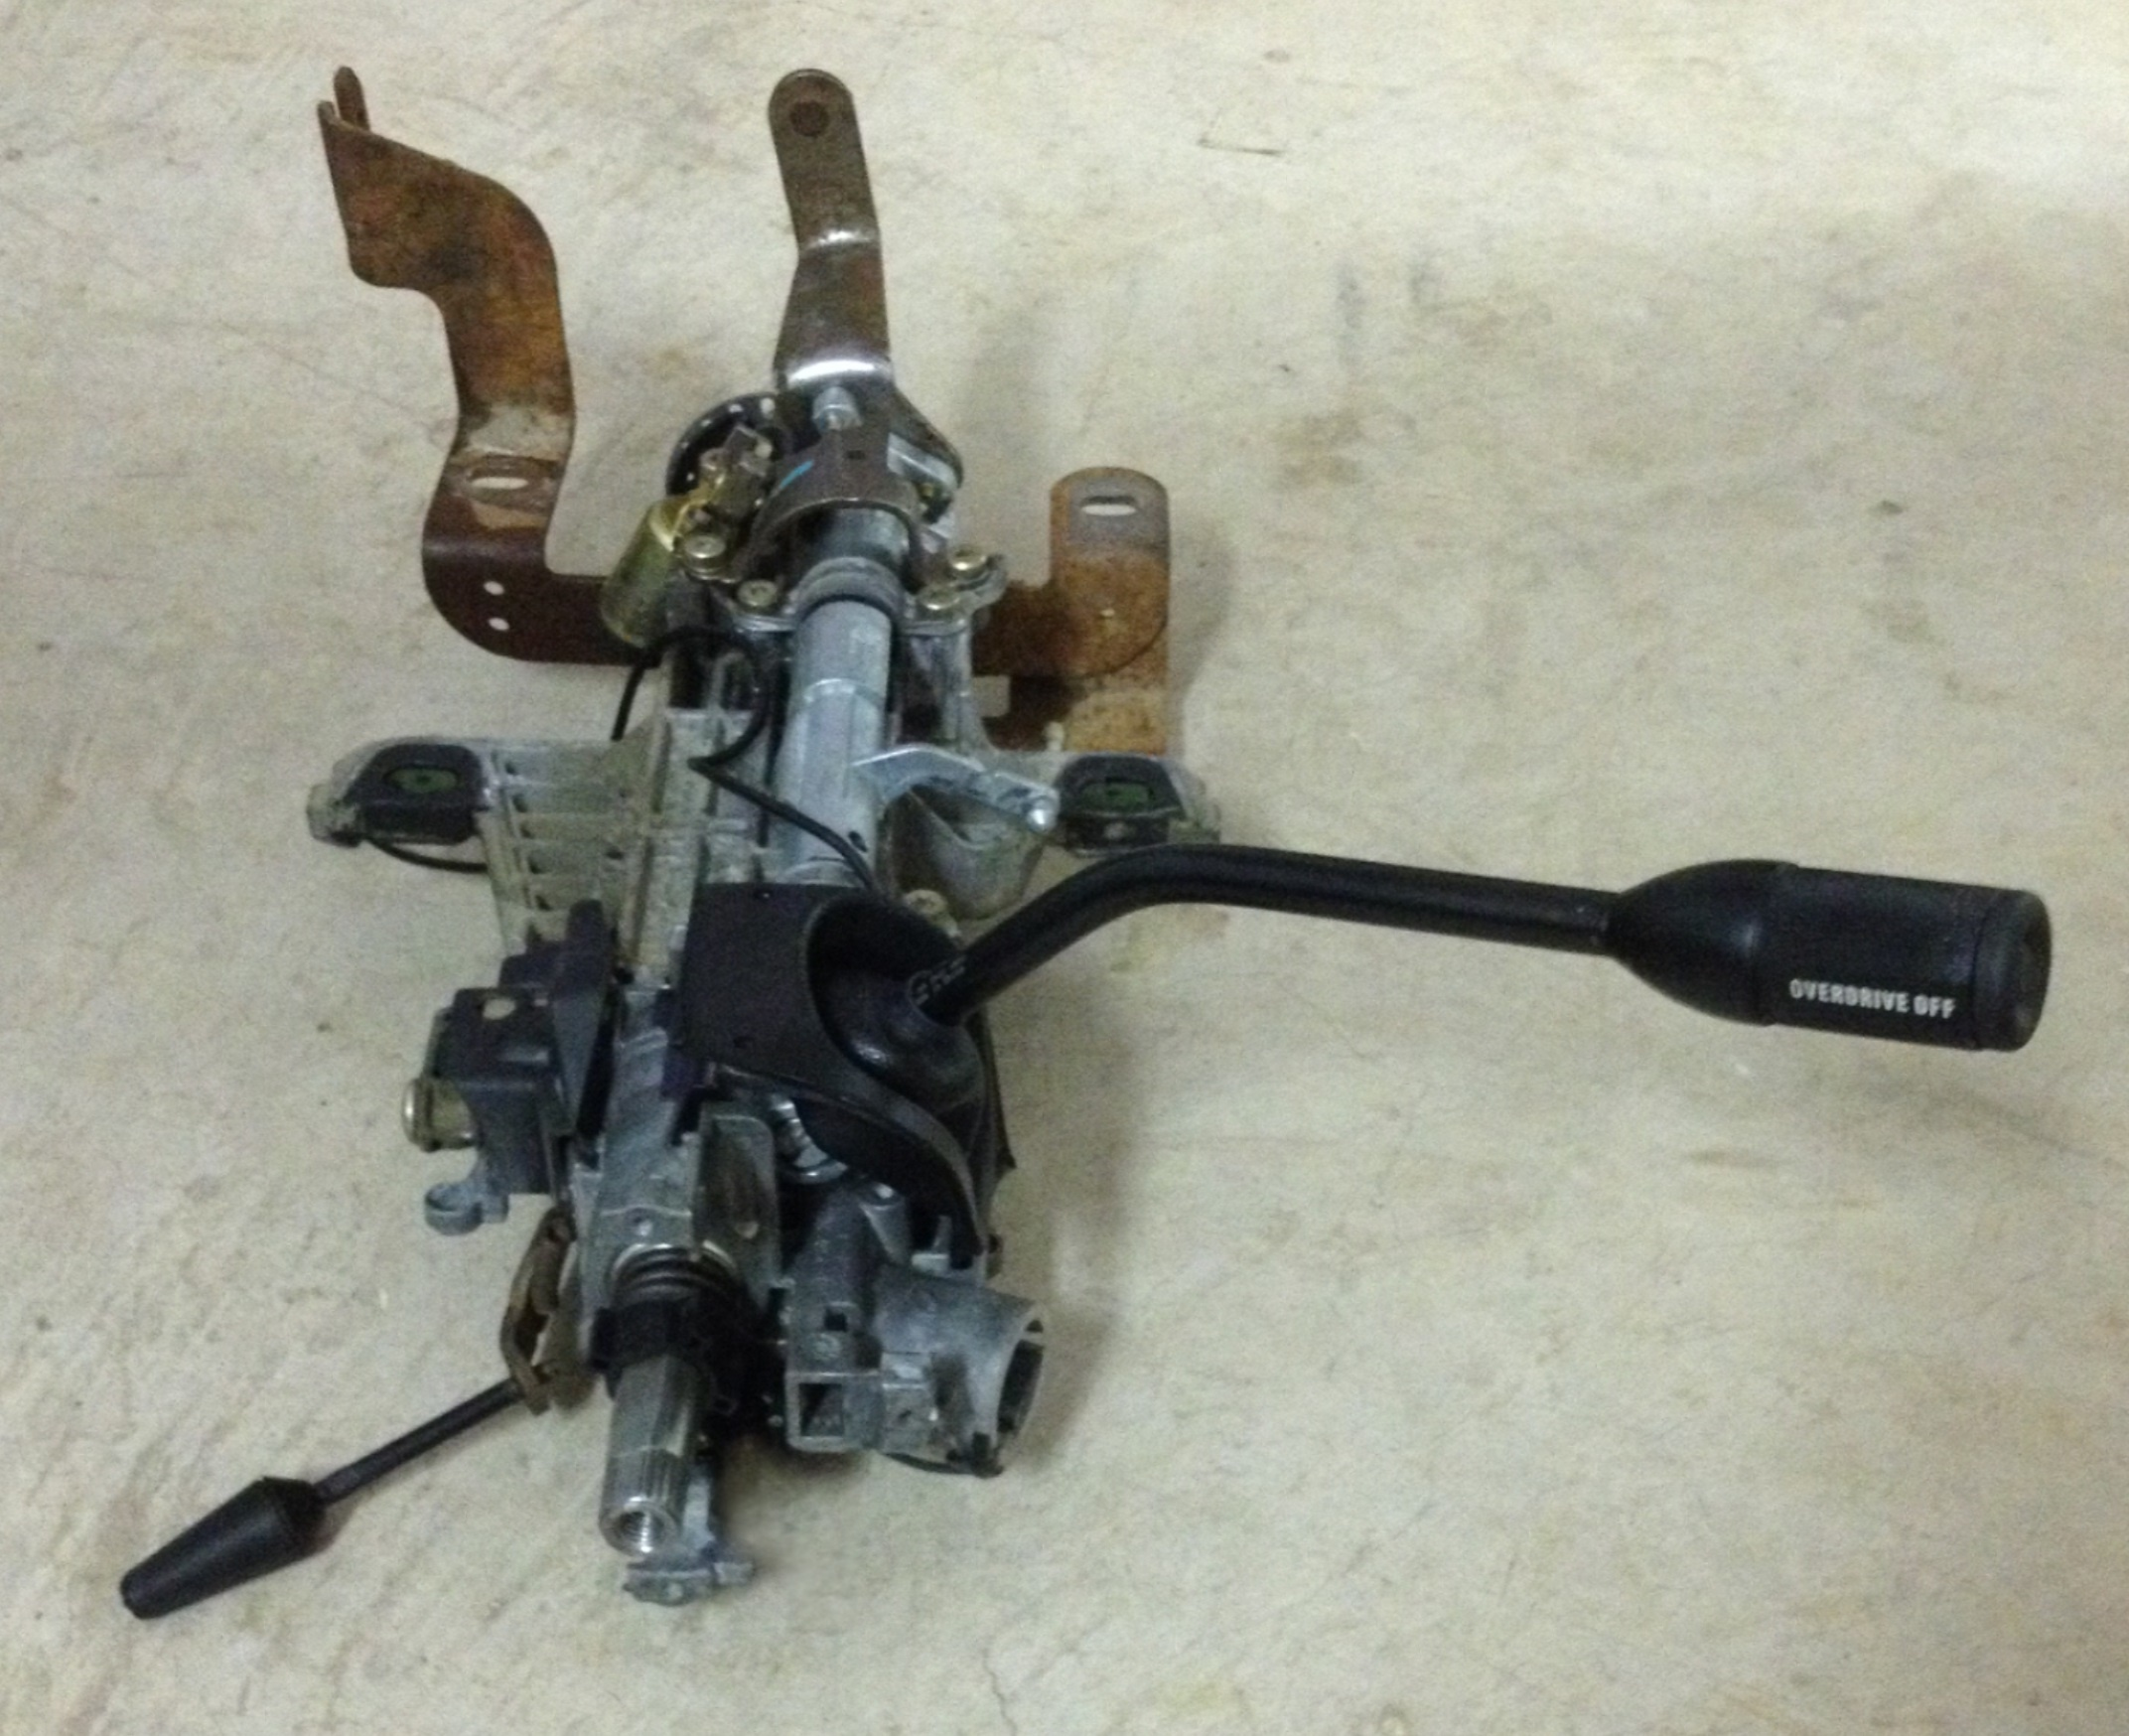 2000 F350 Steering Column Wiring Harness Guide And Troubleshooting 1997 F150 Diagram F 250 350 450 E150 E250 E350 Ford Rebuilt Columns Rh Steeringcolumnservices Com V10